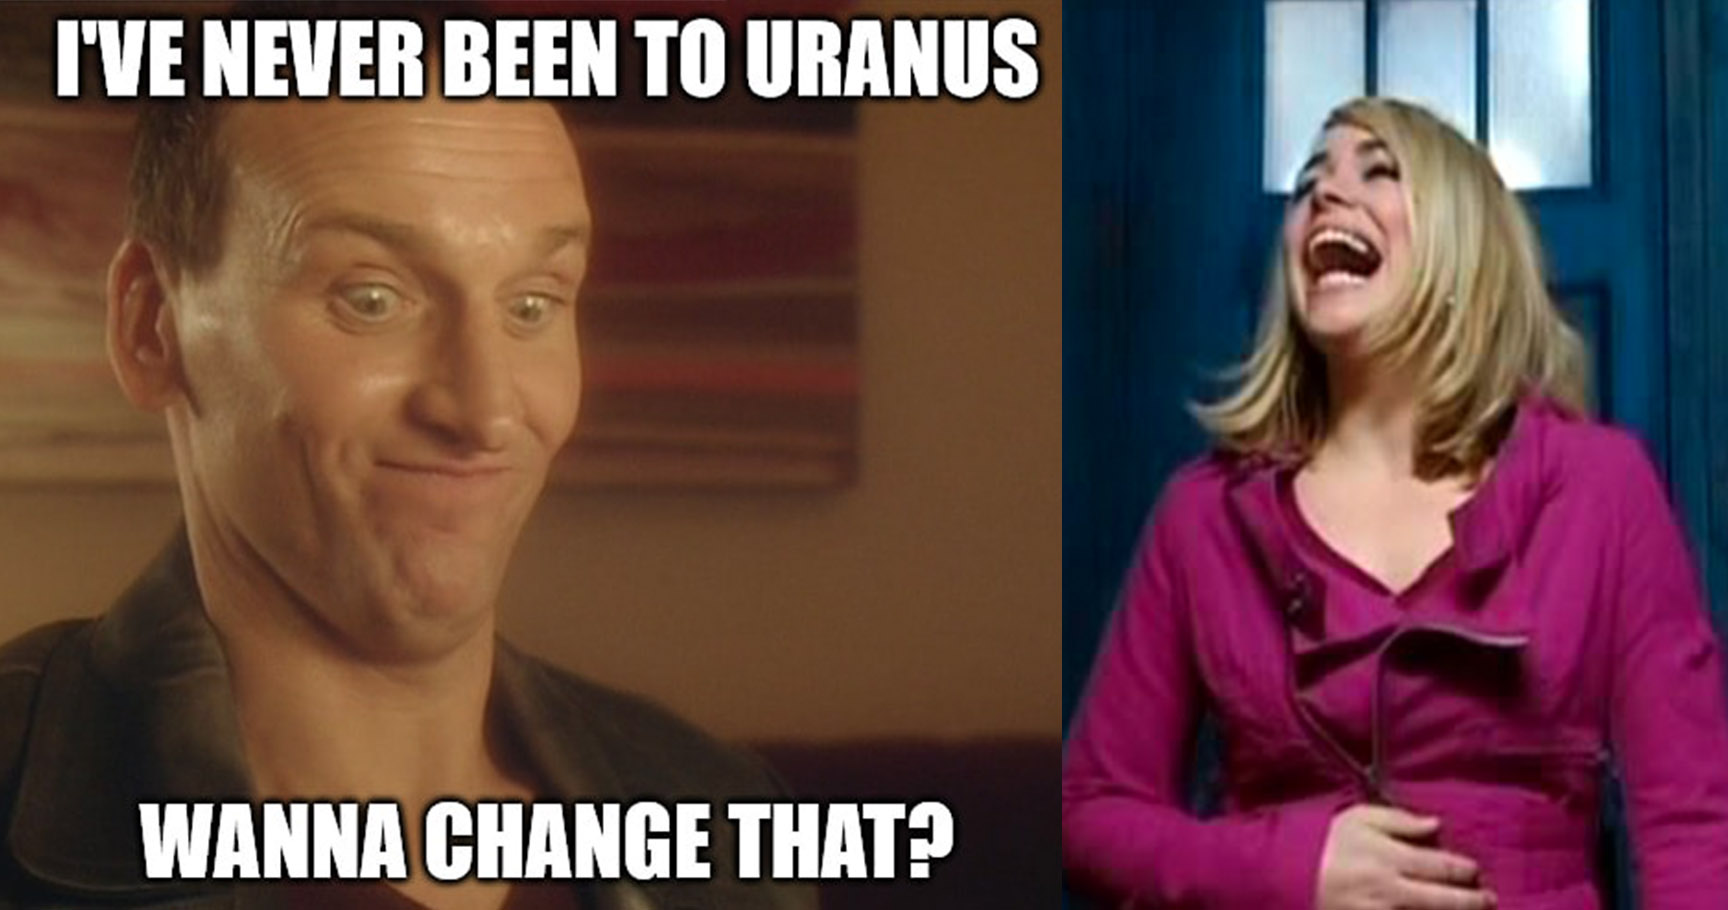 15 Hilariously Inappropriate Doctor Who Memes